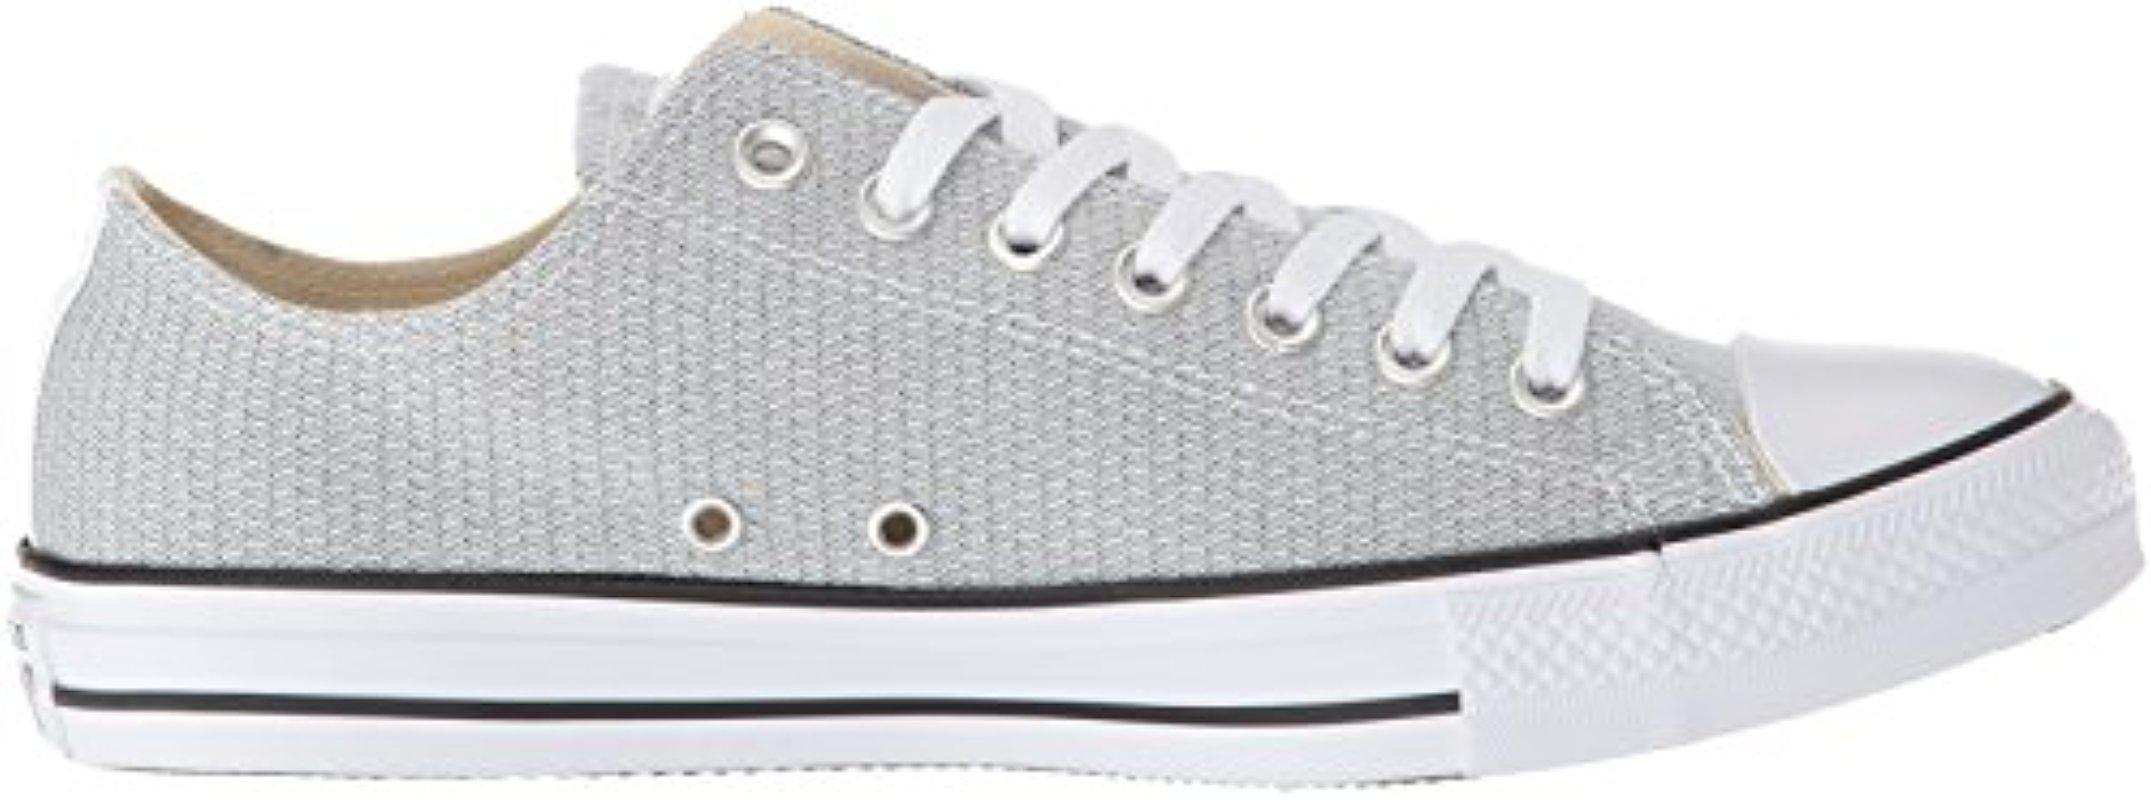 converse all star basket weave